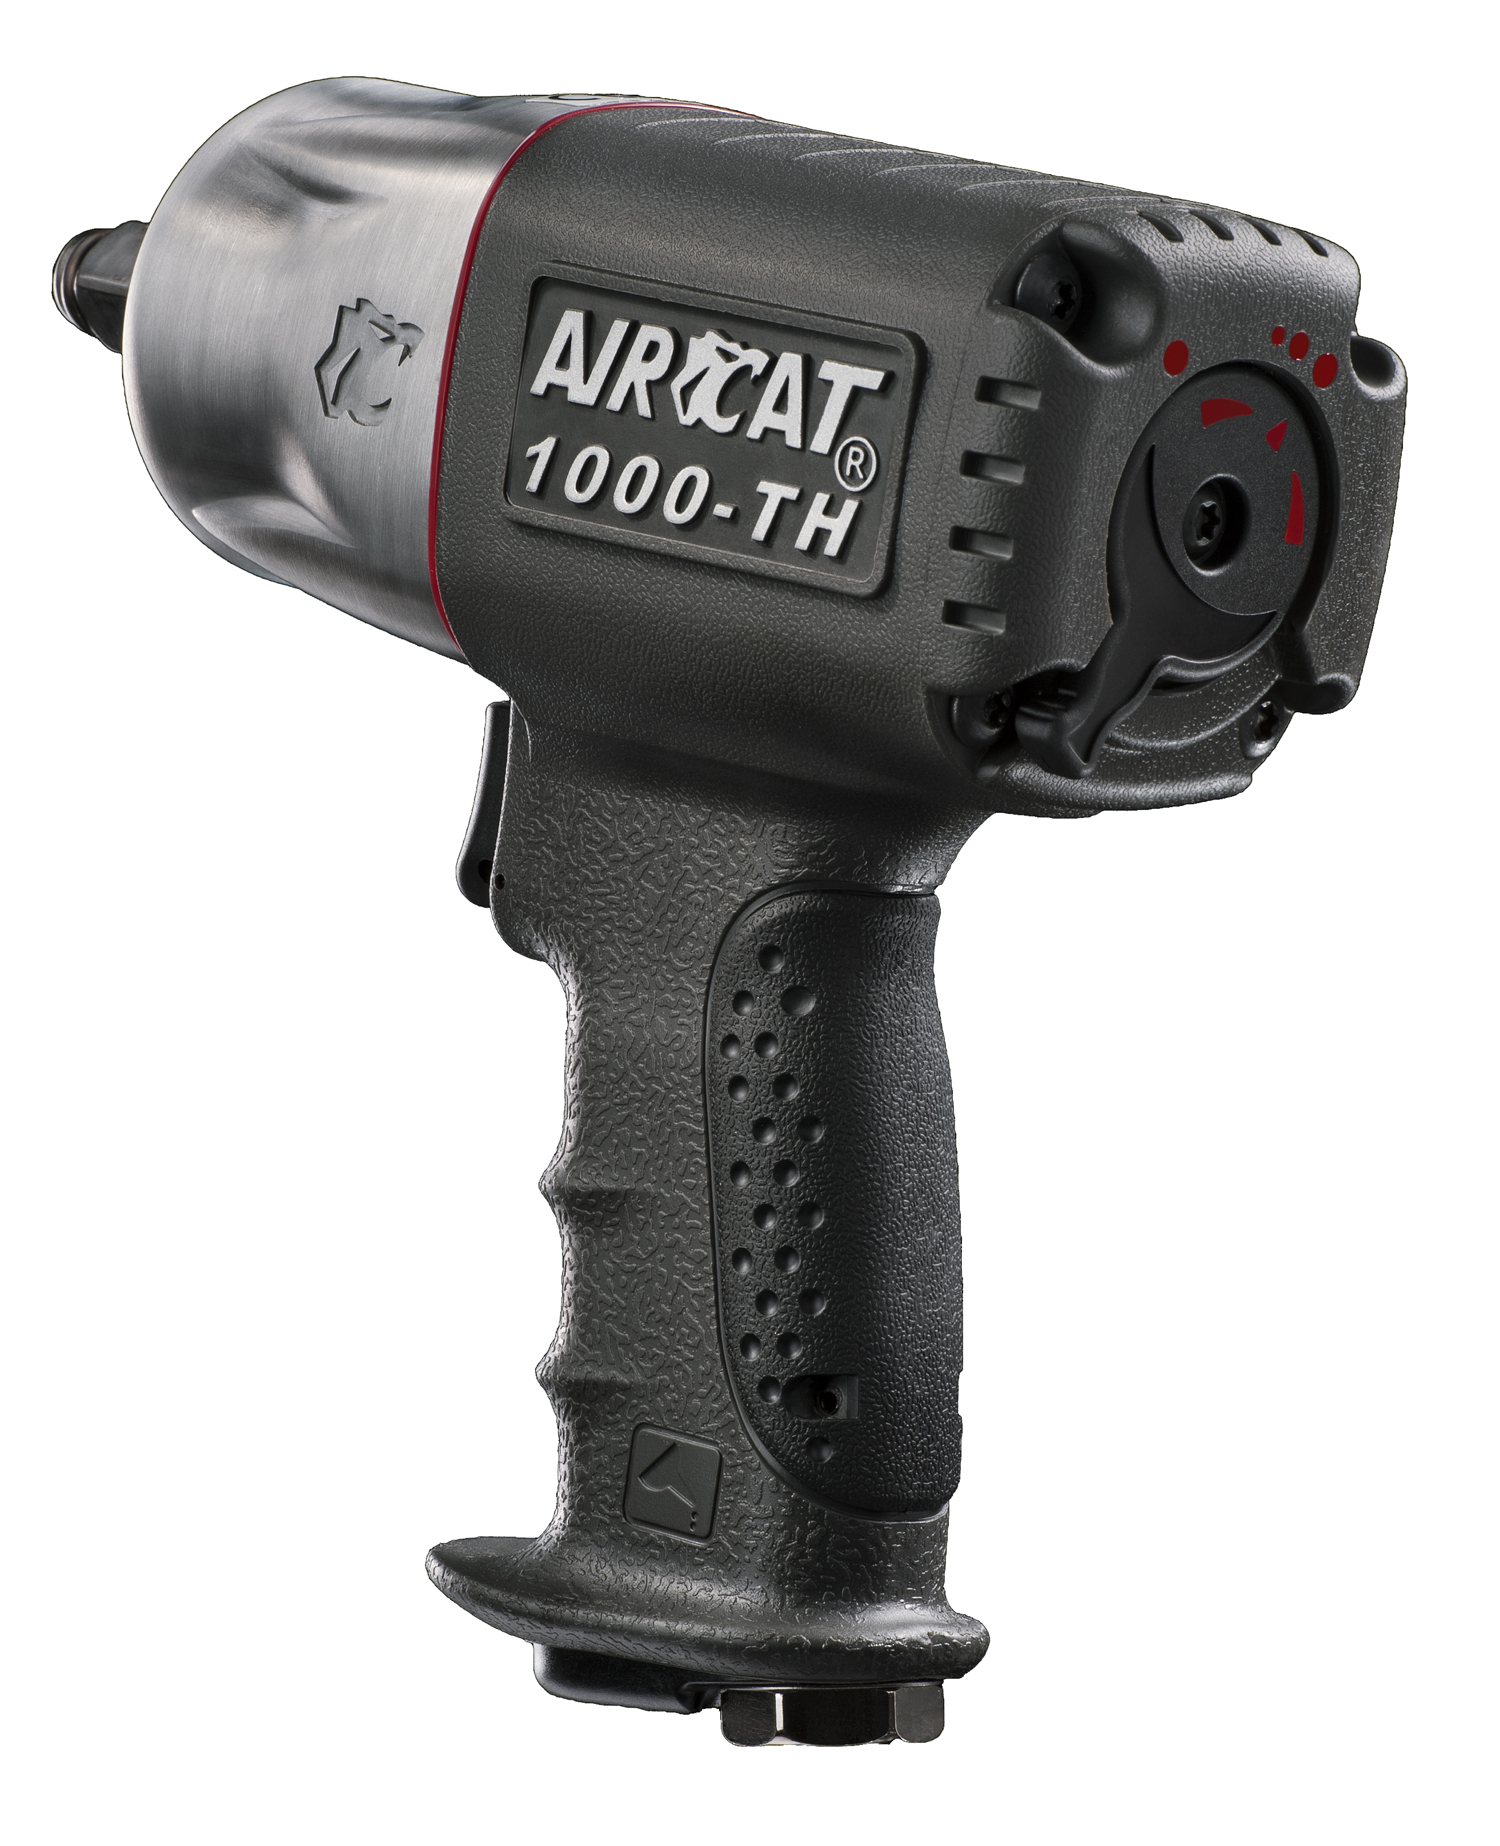 Air Cat Twin Hammer 1/2' Dr Impact Wrench